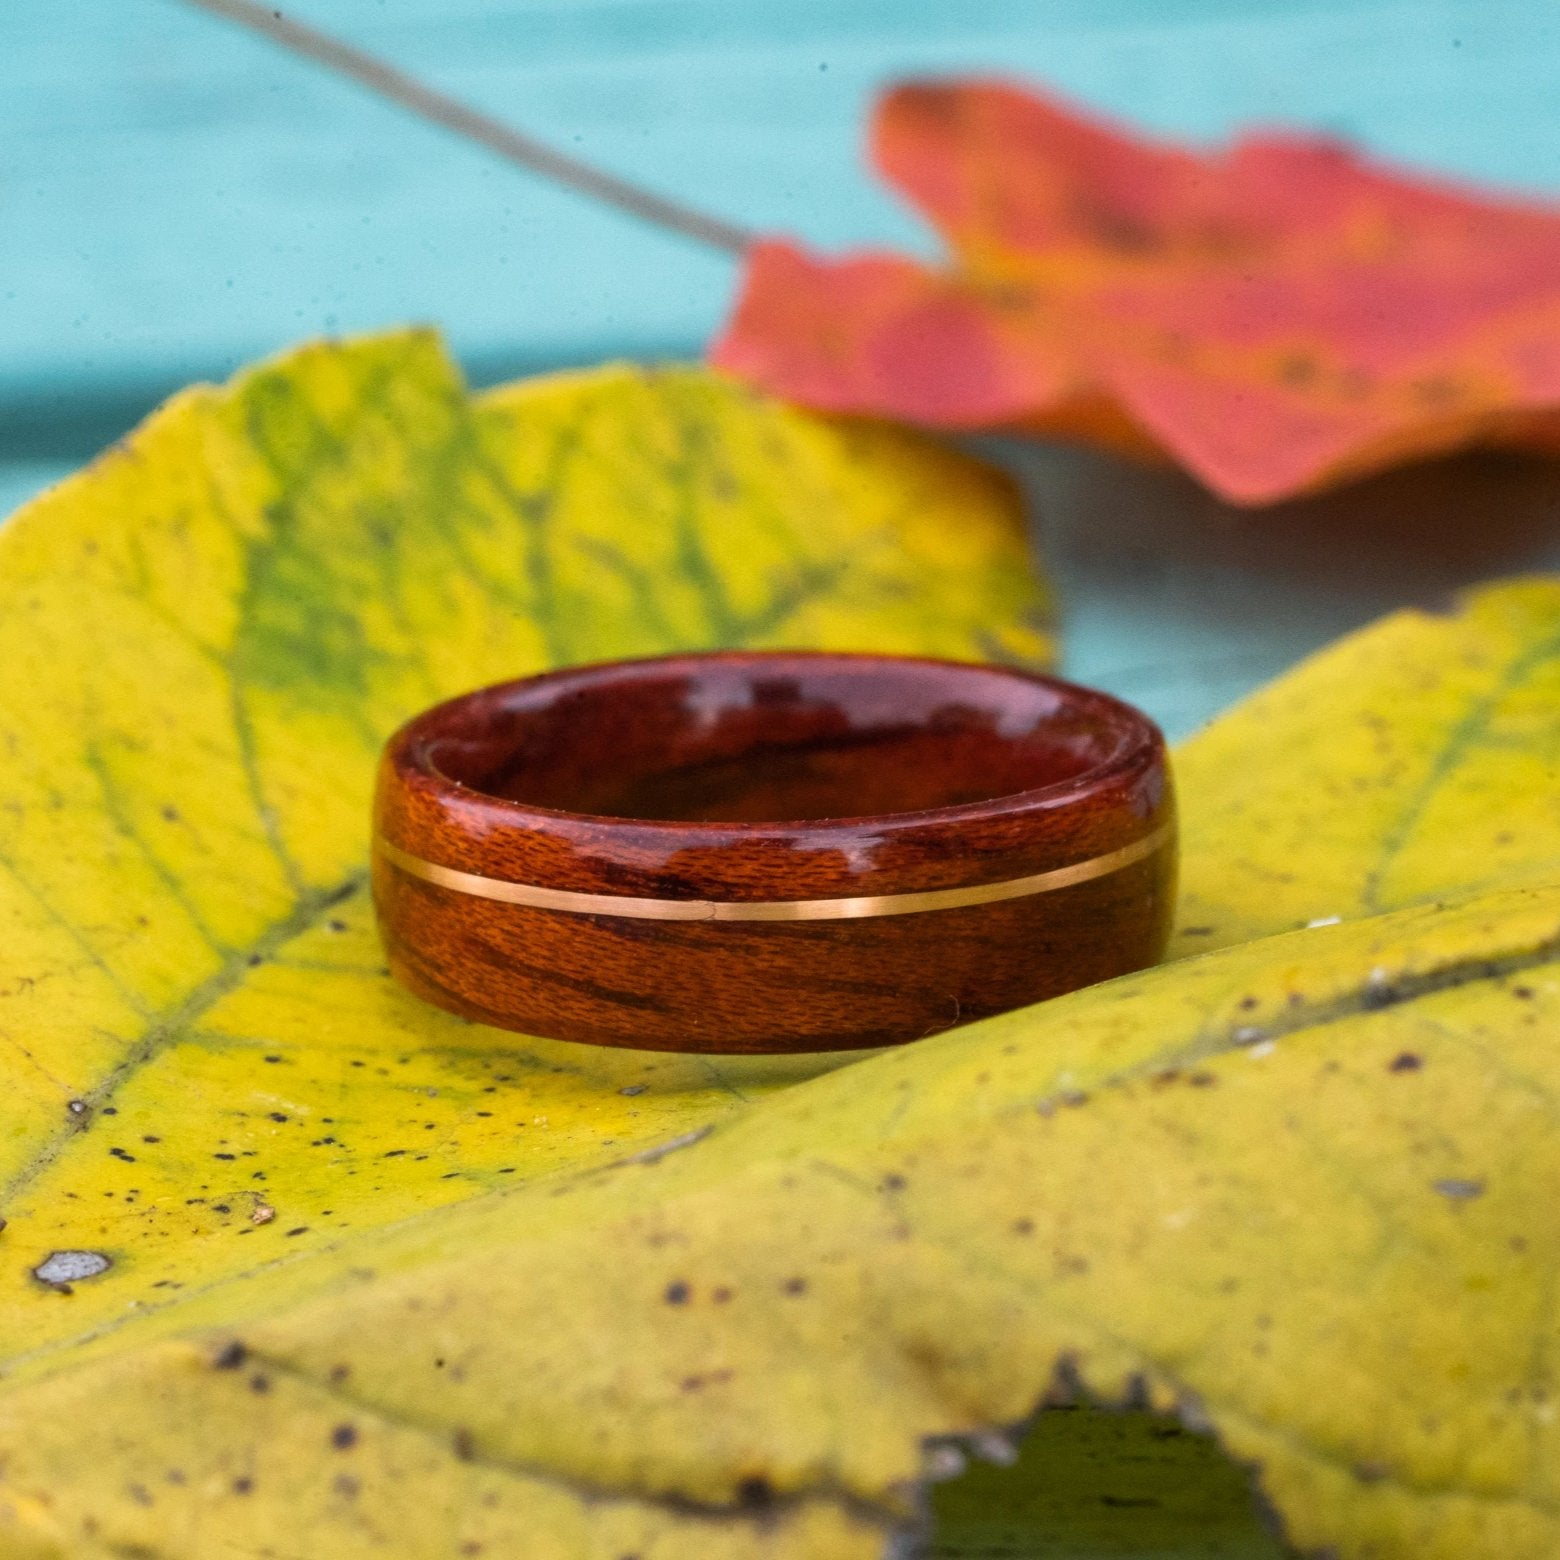 (In-Stock) Bloodwood with Offset Rose Gold Inlay- Size 6.75/7 mm Wide